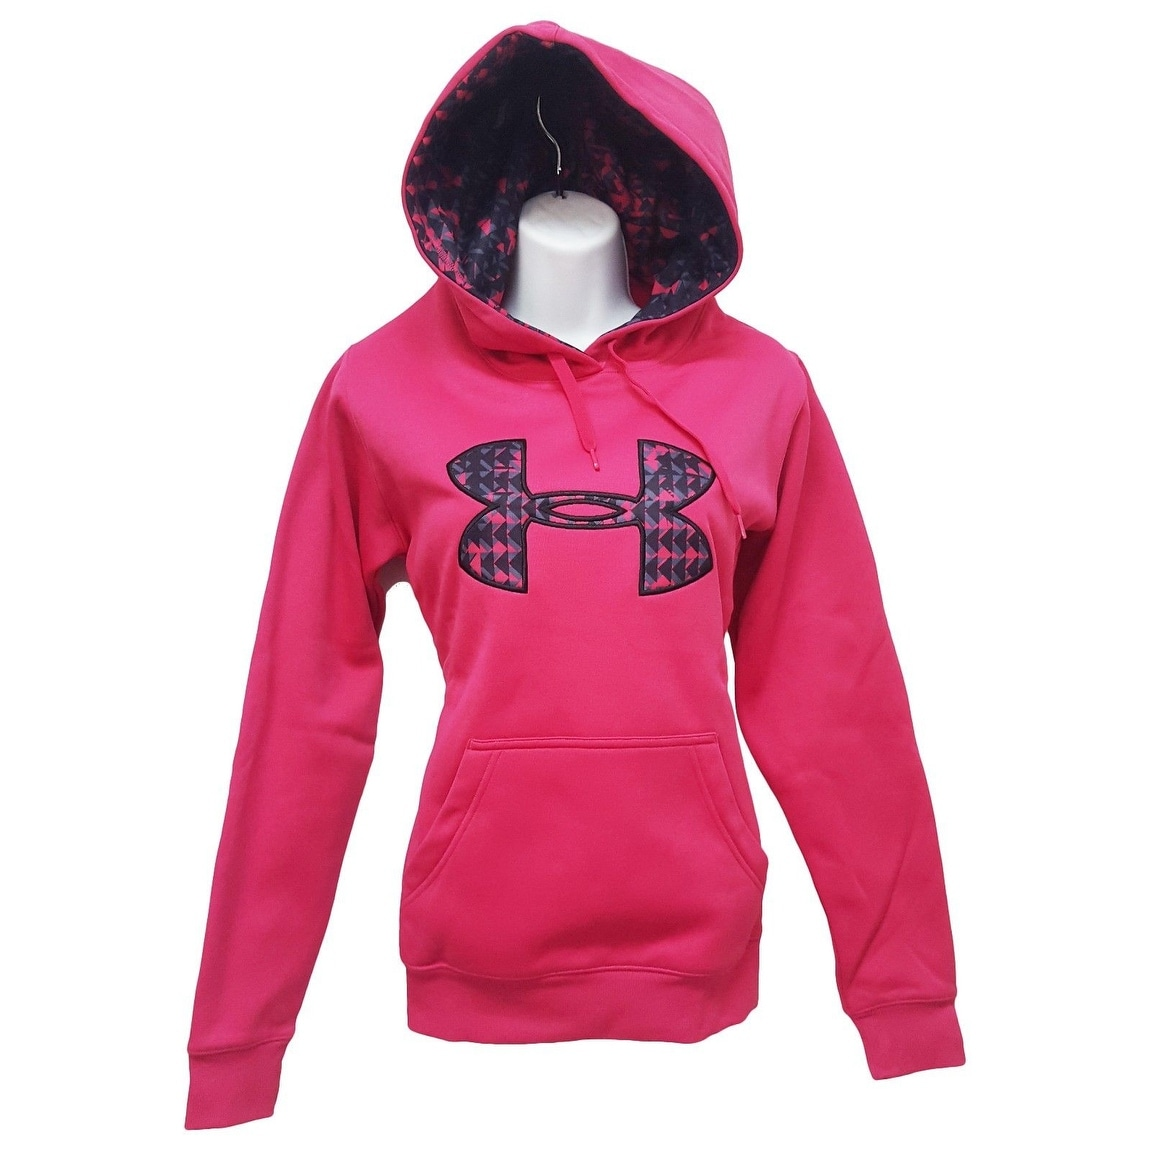 Women s Under Armour 1221640 ColdGear Fleece Big Logo Hoodie Pink Small 2bbeff6de129